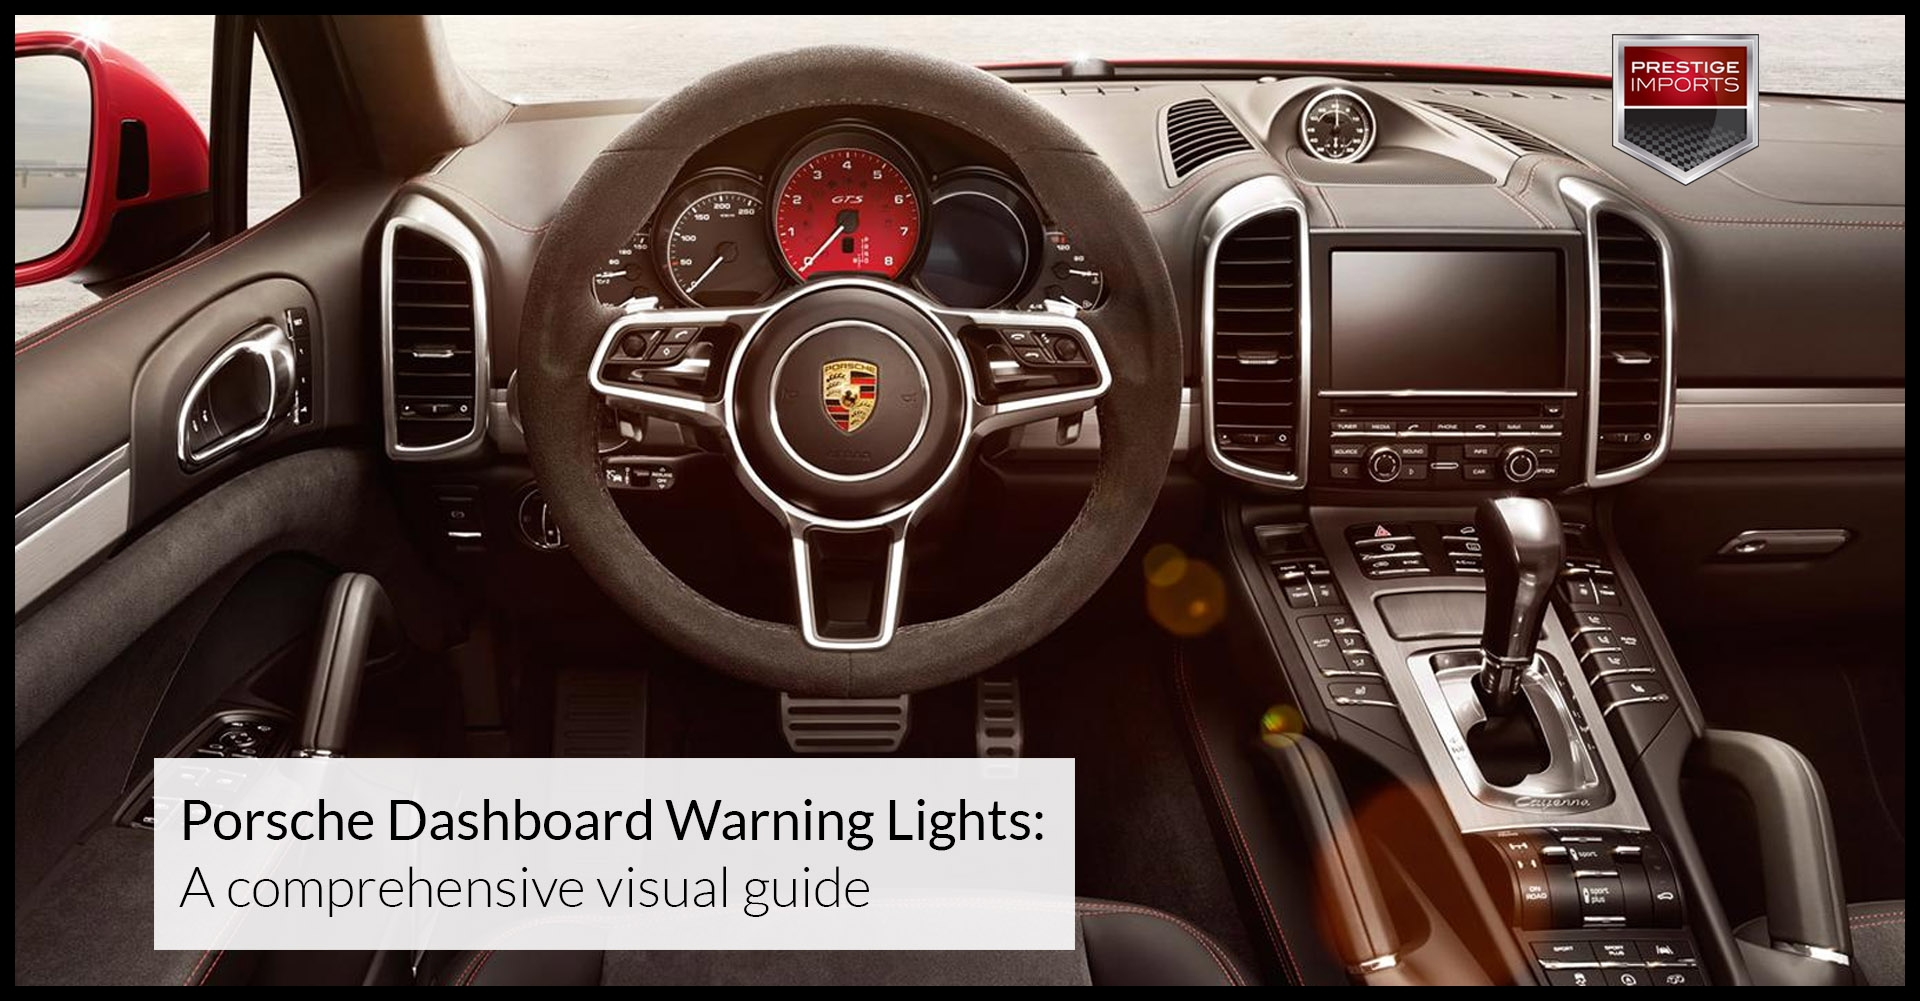 Porsche Dashboard Warning Lights A prehensive visual guide audi a6 c6 dash  warning light symbols ...